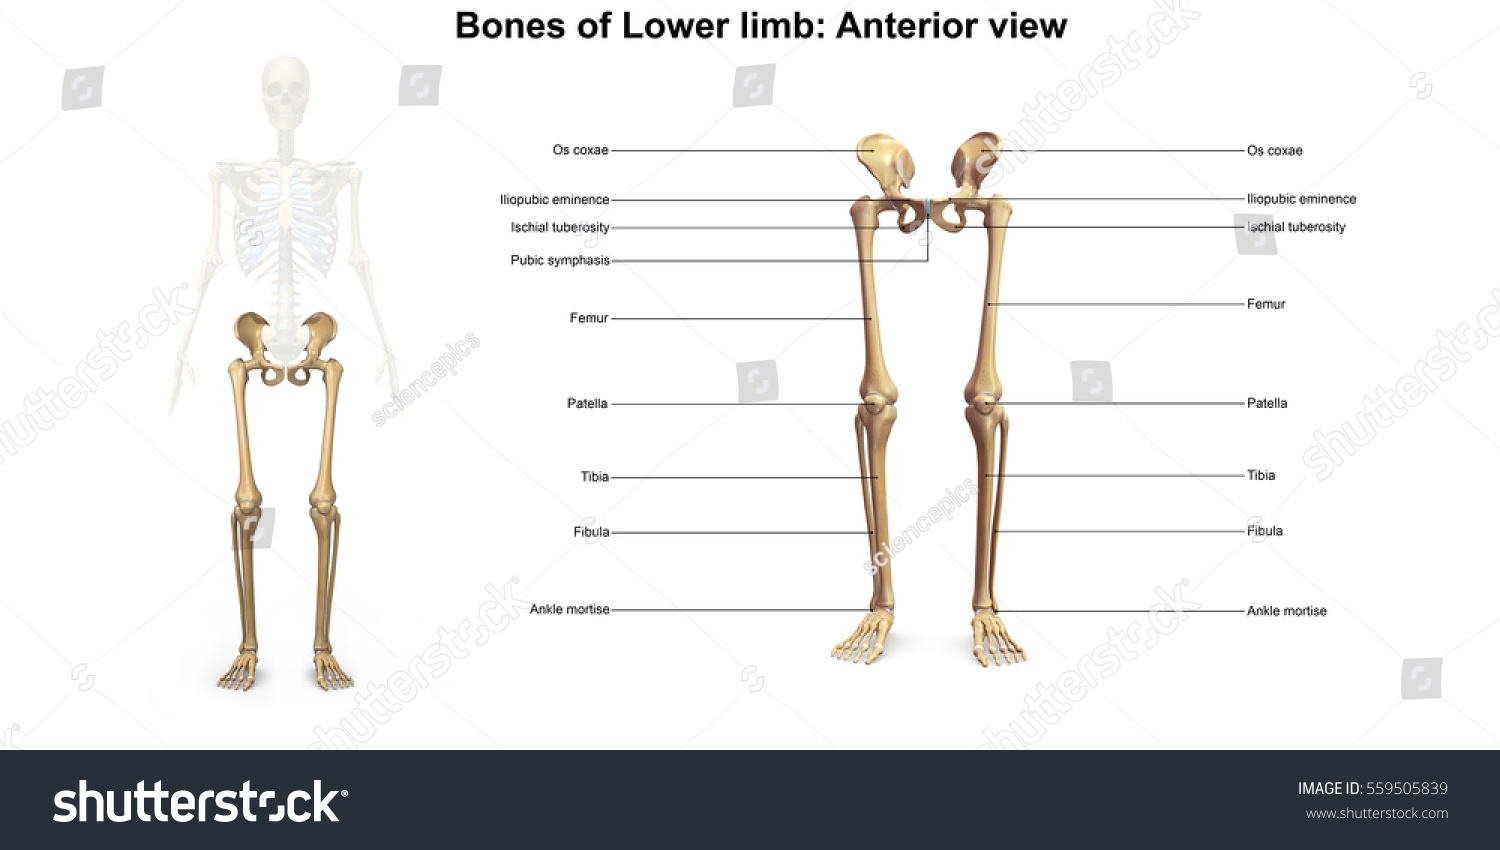 Bones Lower Limb Anterior View 3 D Stock Illustration 559505839 ...